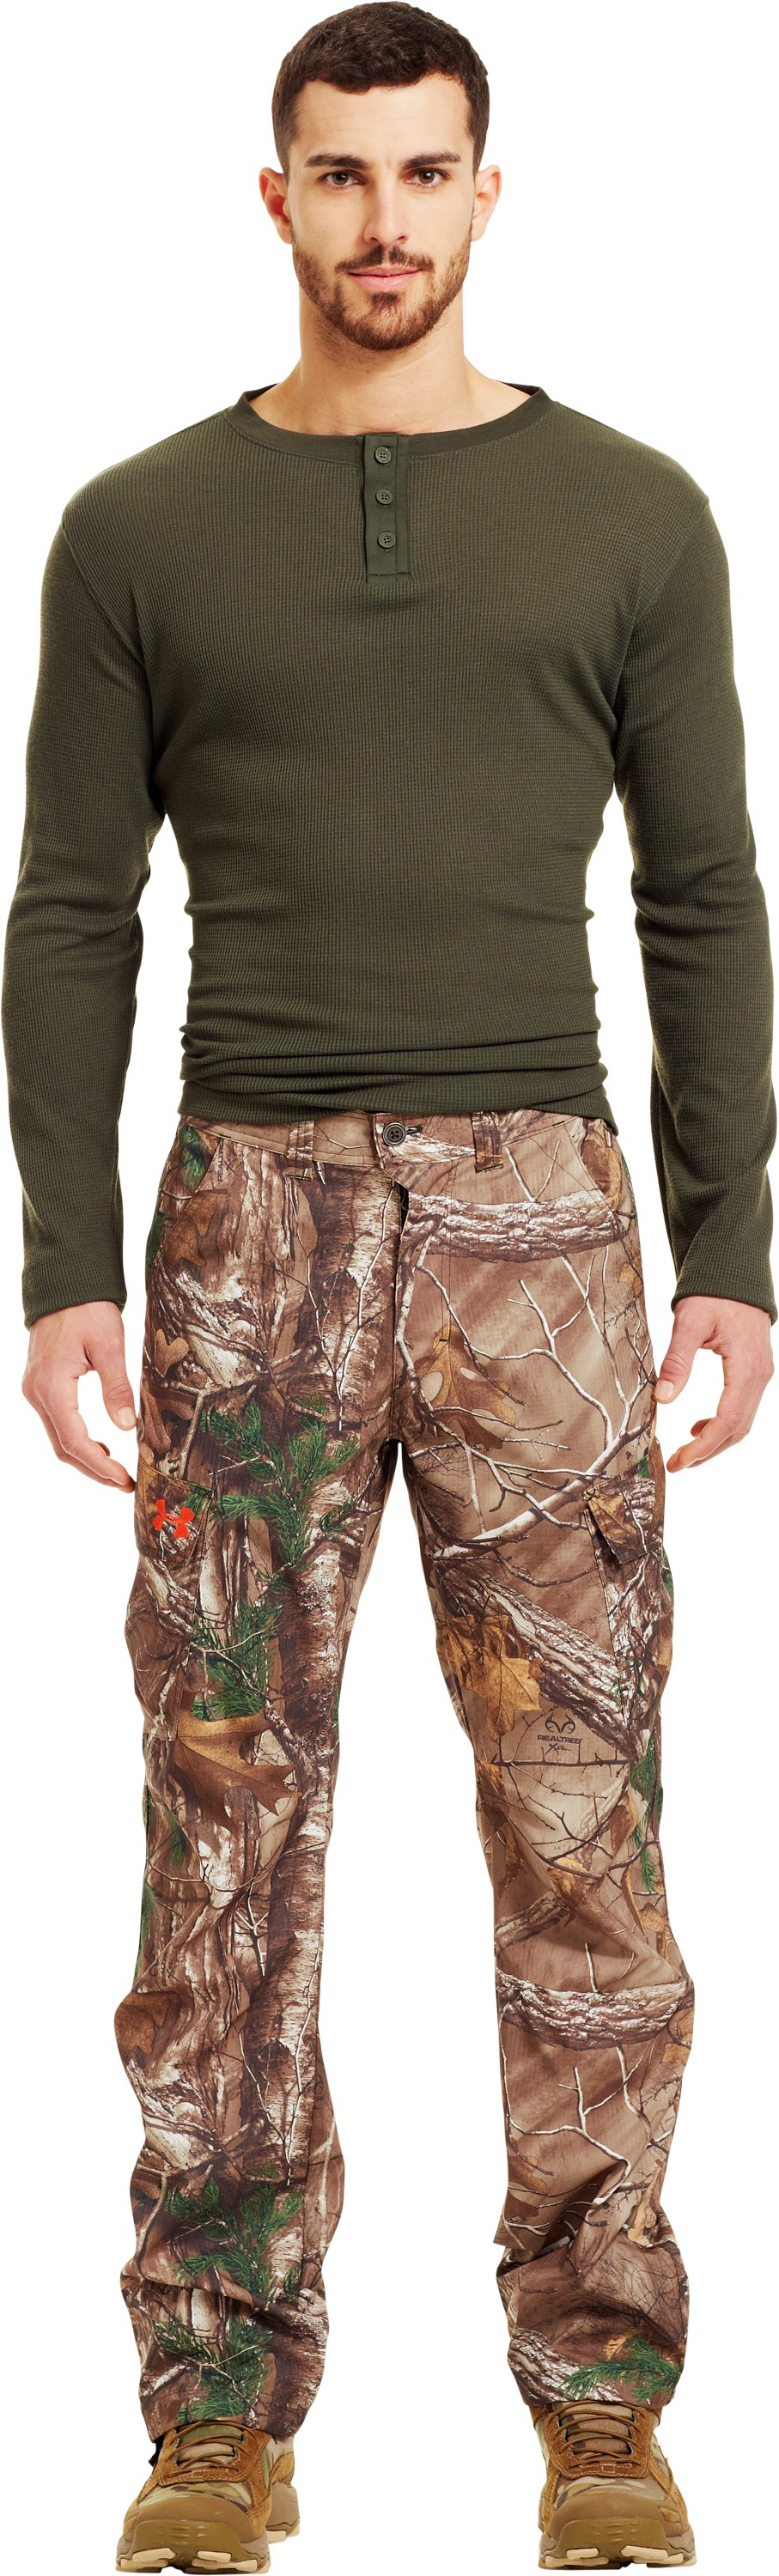 Men's UA Performance Field Pants, Mossy Oak Break-Up Infinity, zoomed image